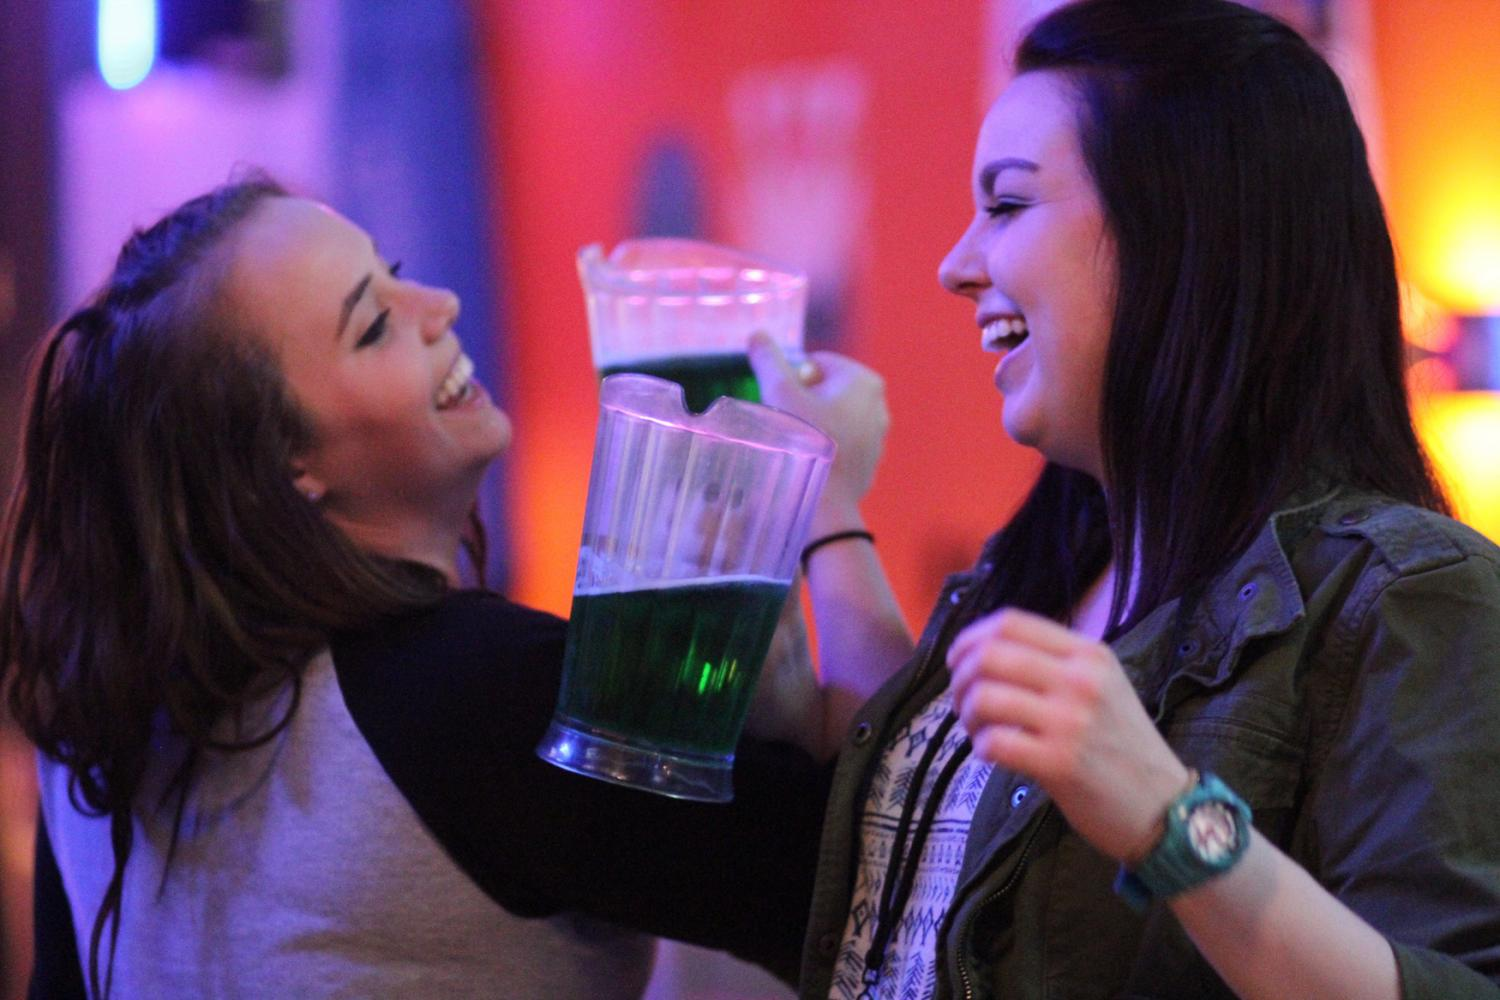 Two students crossing arms with pitchers of green beer at Monterey's Pub & Grub